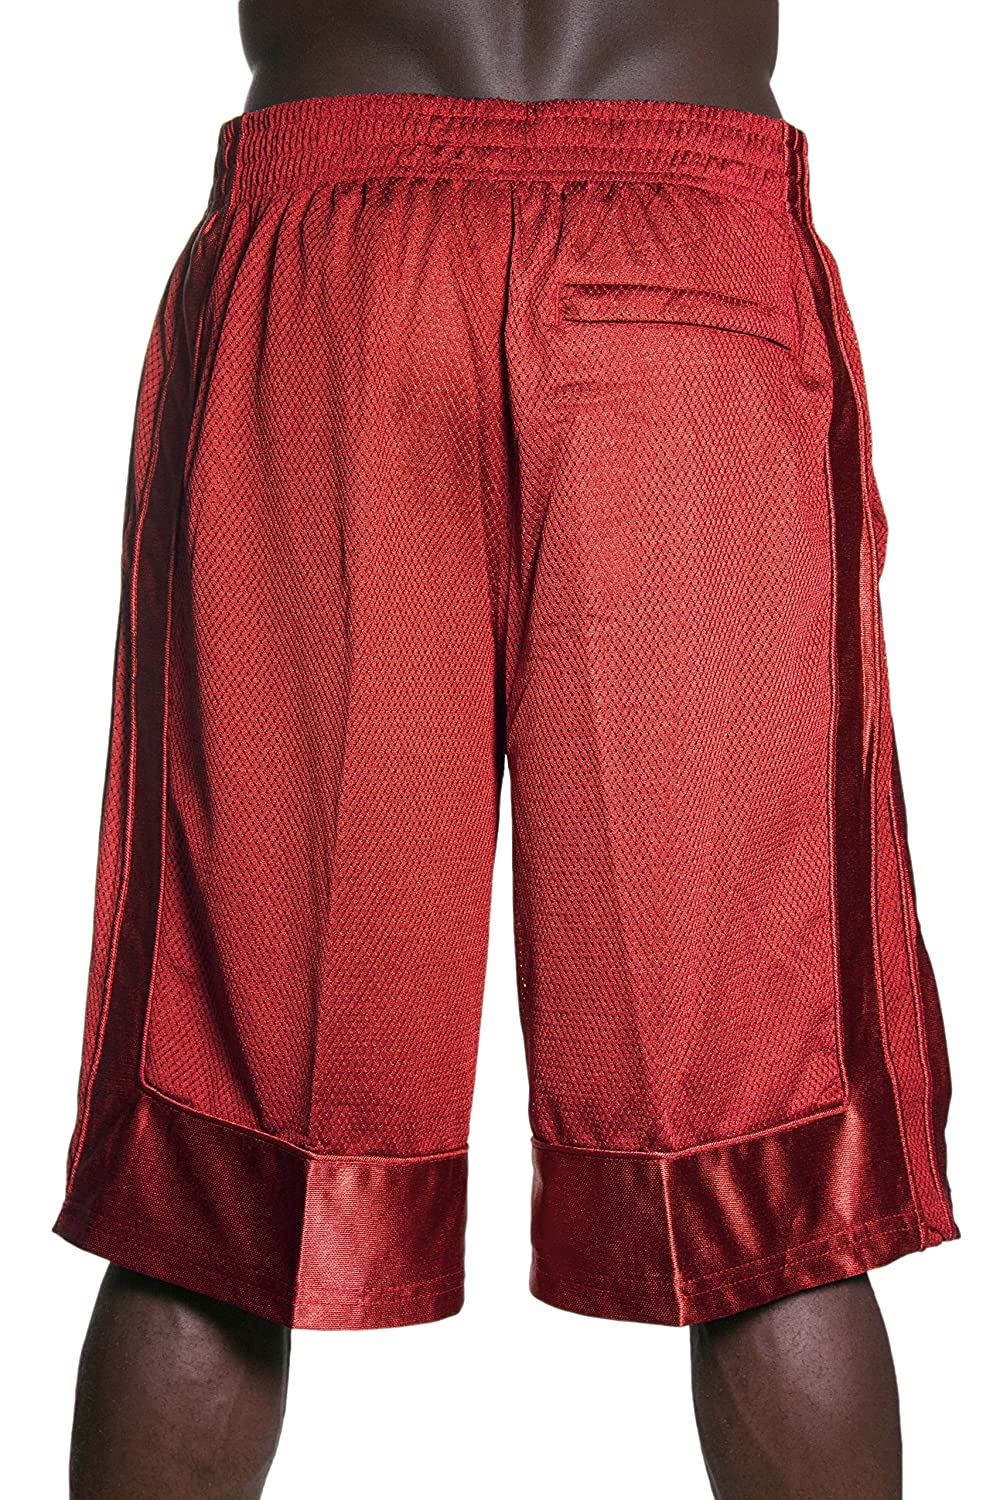 Hat and Beyond Mens Heavyweight Mesh Shorts Athletic Fitness Gym Sports Workout Basketball S-5XL